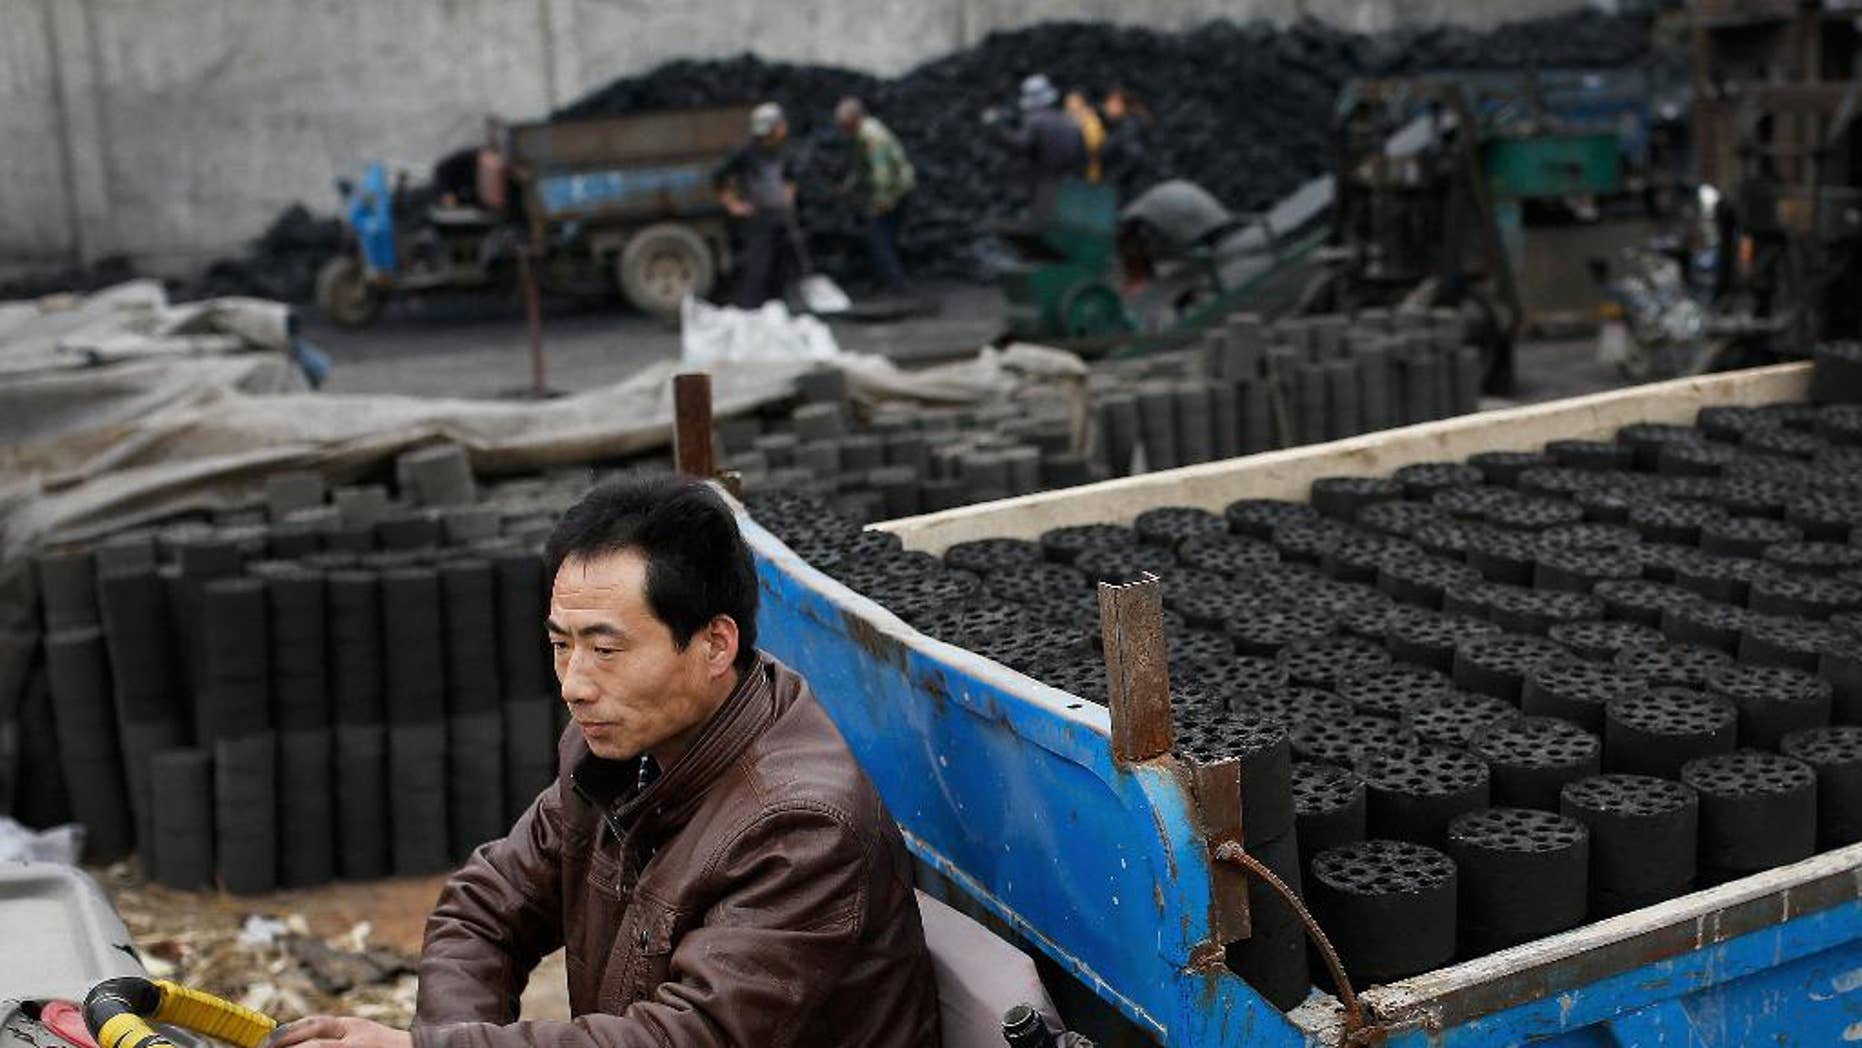 In this Nov. 27, 2014 photo, a man drives his tricycle cart loaded with coal briquettes as he leaves a coal process station in Tangxian in China's Hebei province. Coal production in China, the world's biggest coal-consuming nation, fell by 6 percent in the first four months of the year 2015 as the economy slows and the government makes a concerted push to reduce carbon emissions. The National Development and Reform Commission said Tuesday, May 26, 2015 that Chinese imports of coal also fell, plummeting 38 percent. (AP Photo/Andy Wong)